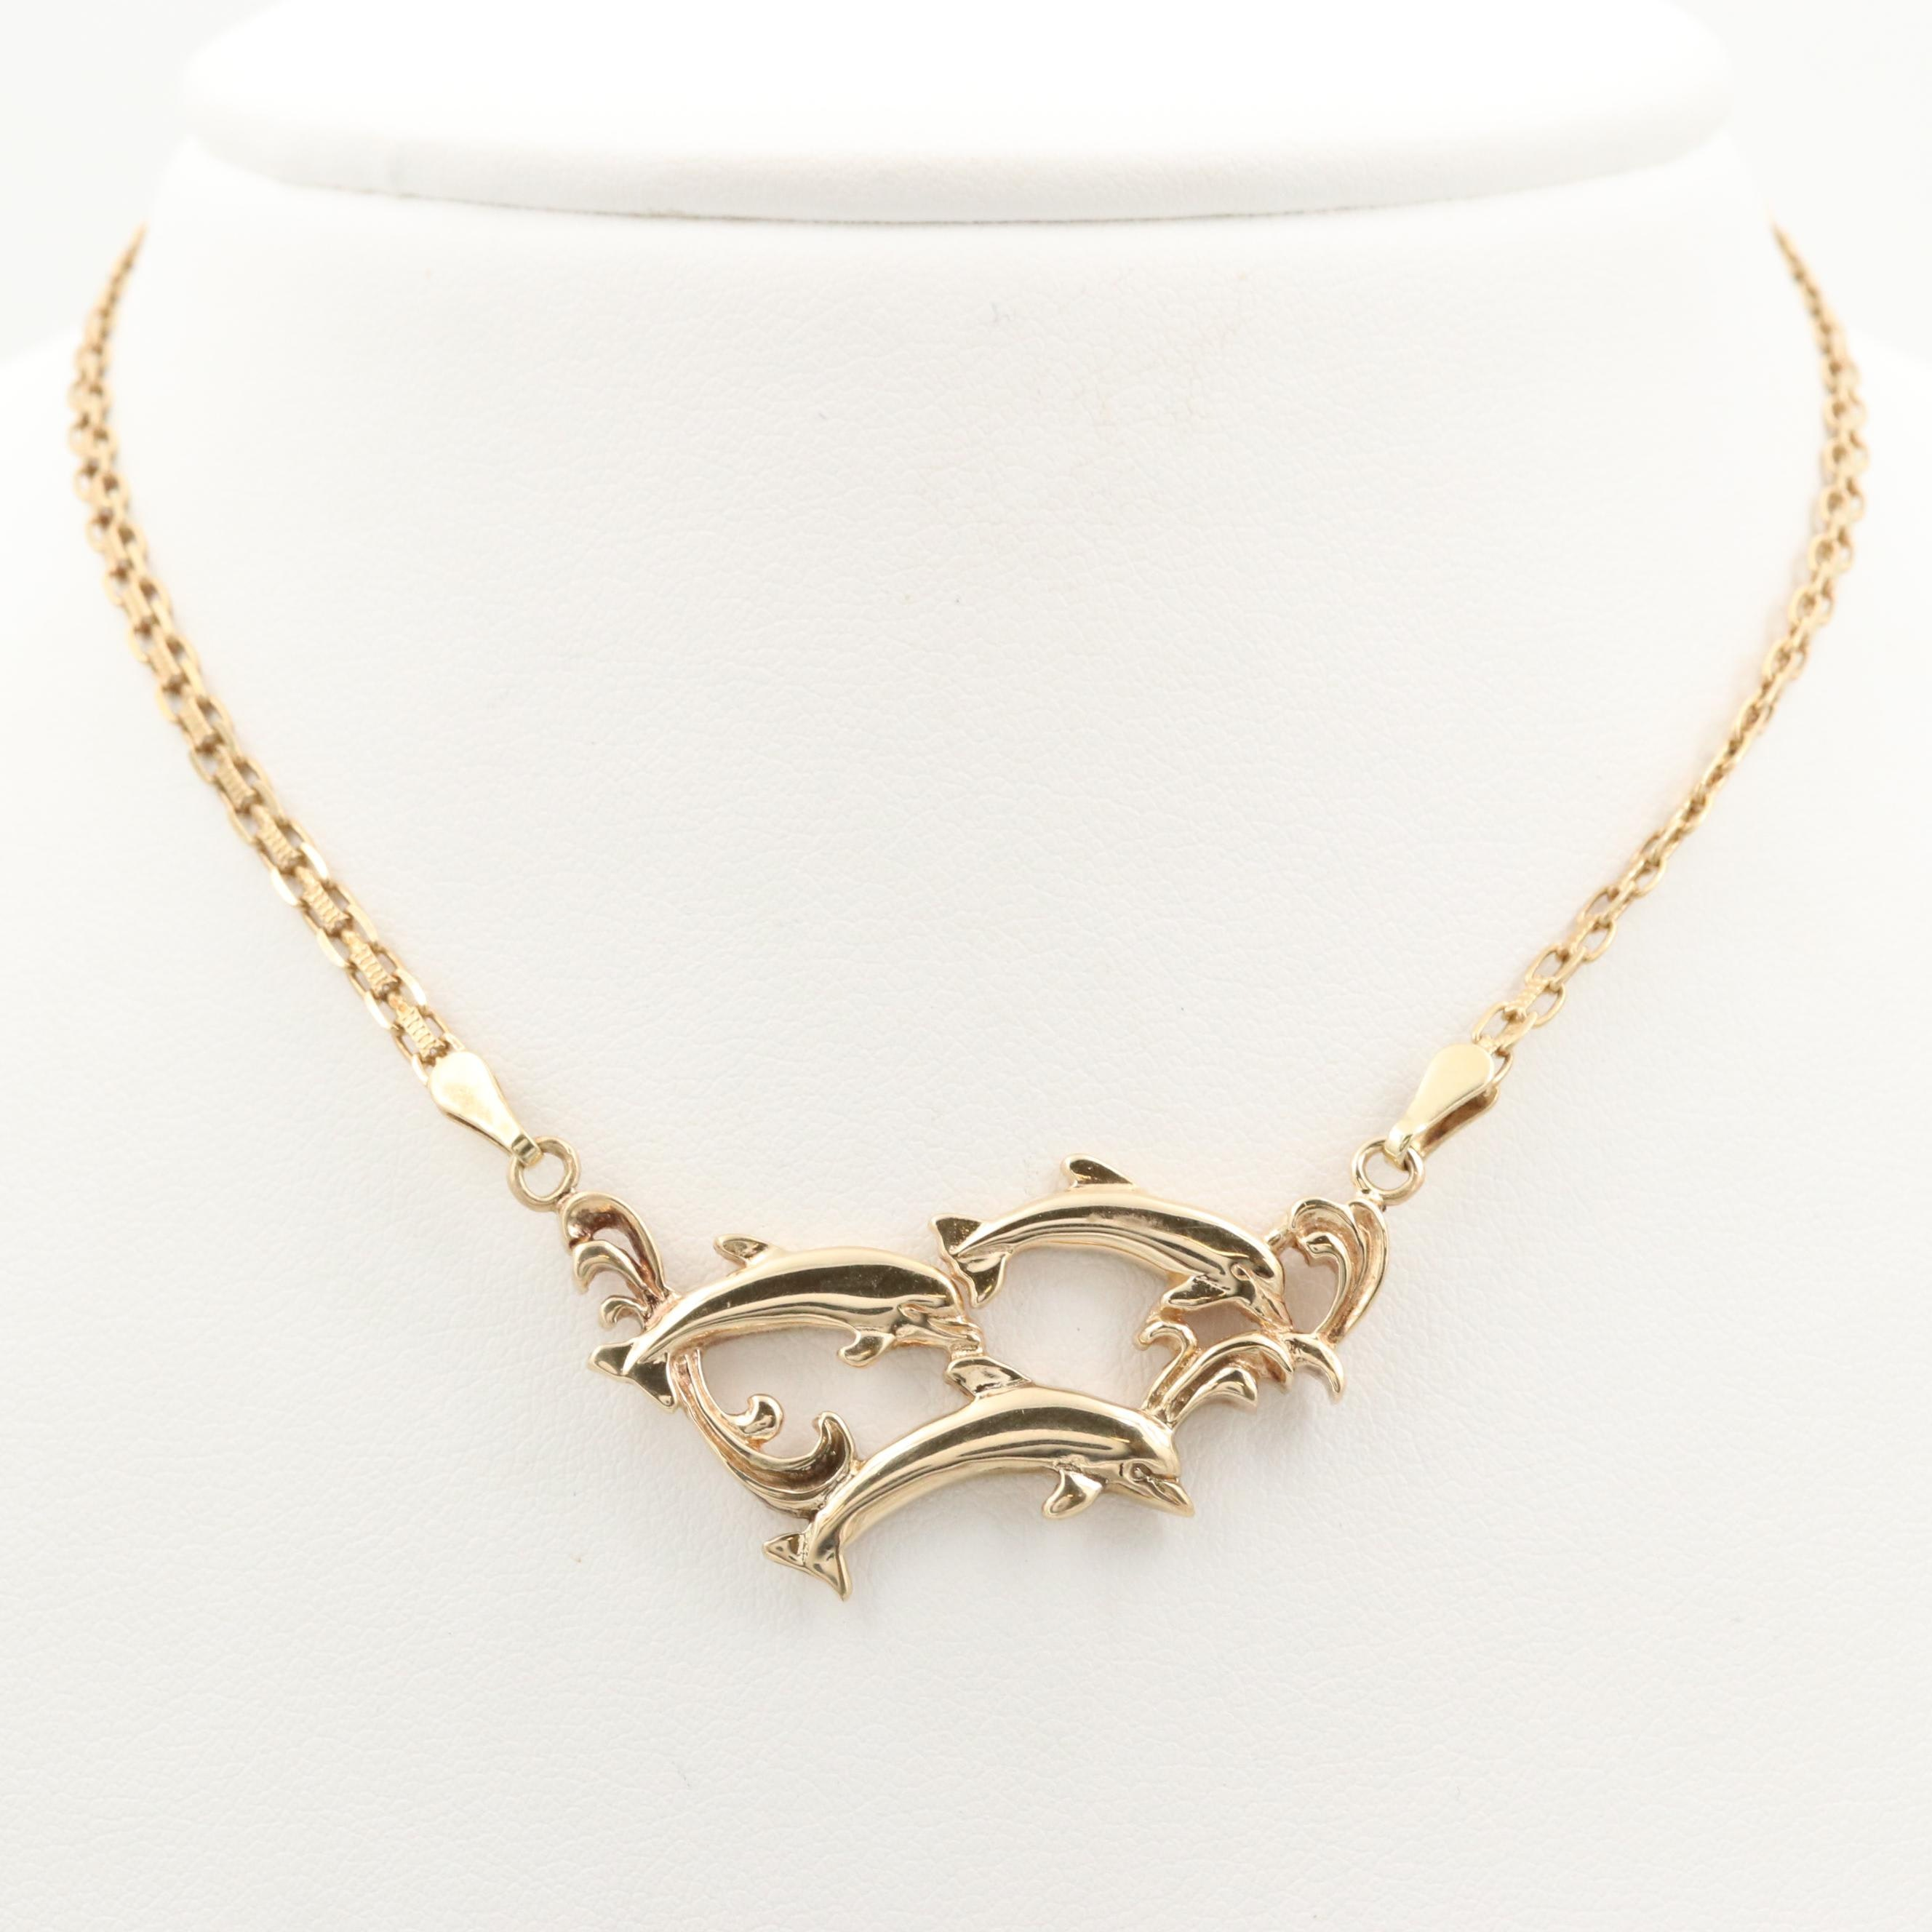 14K Yellow Gold Dolphin Motif Necklace